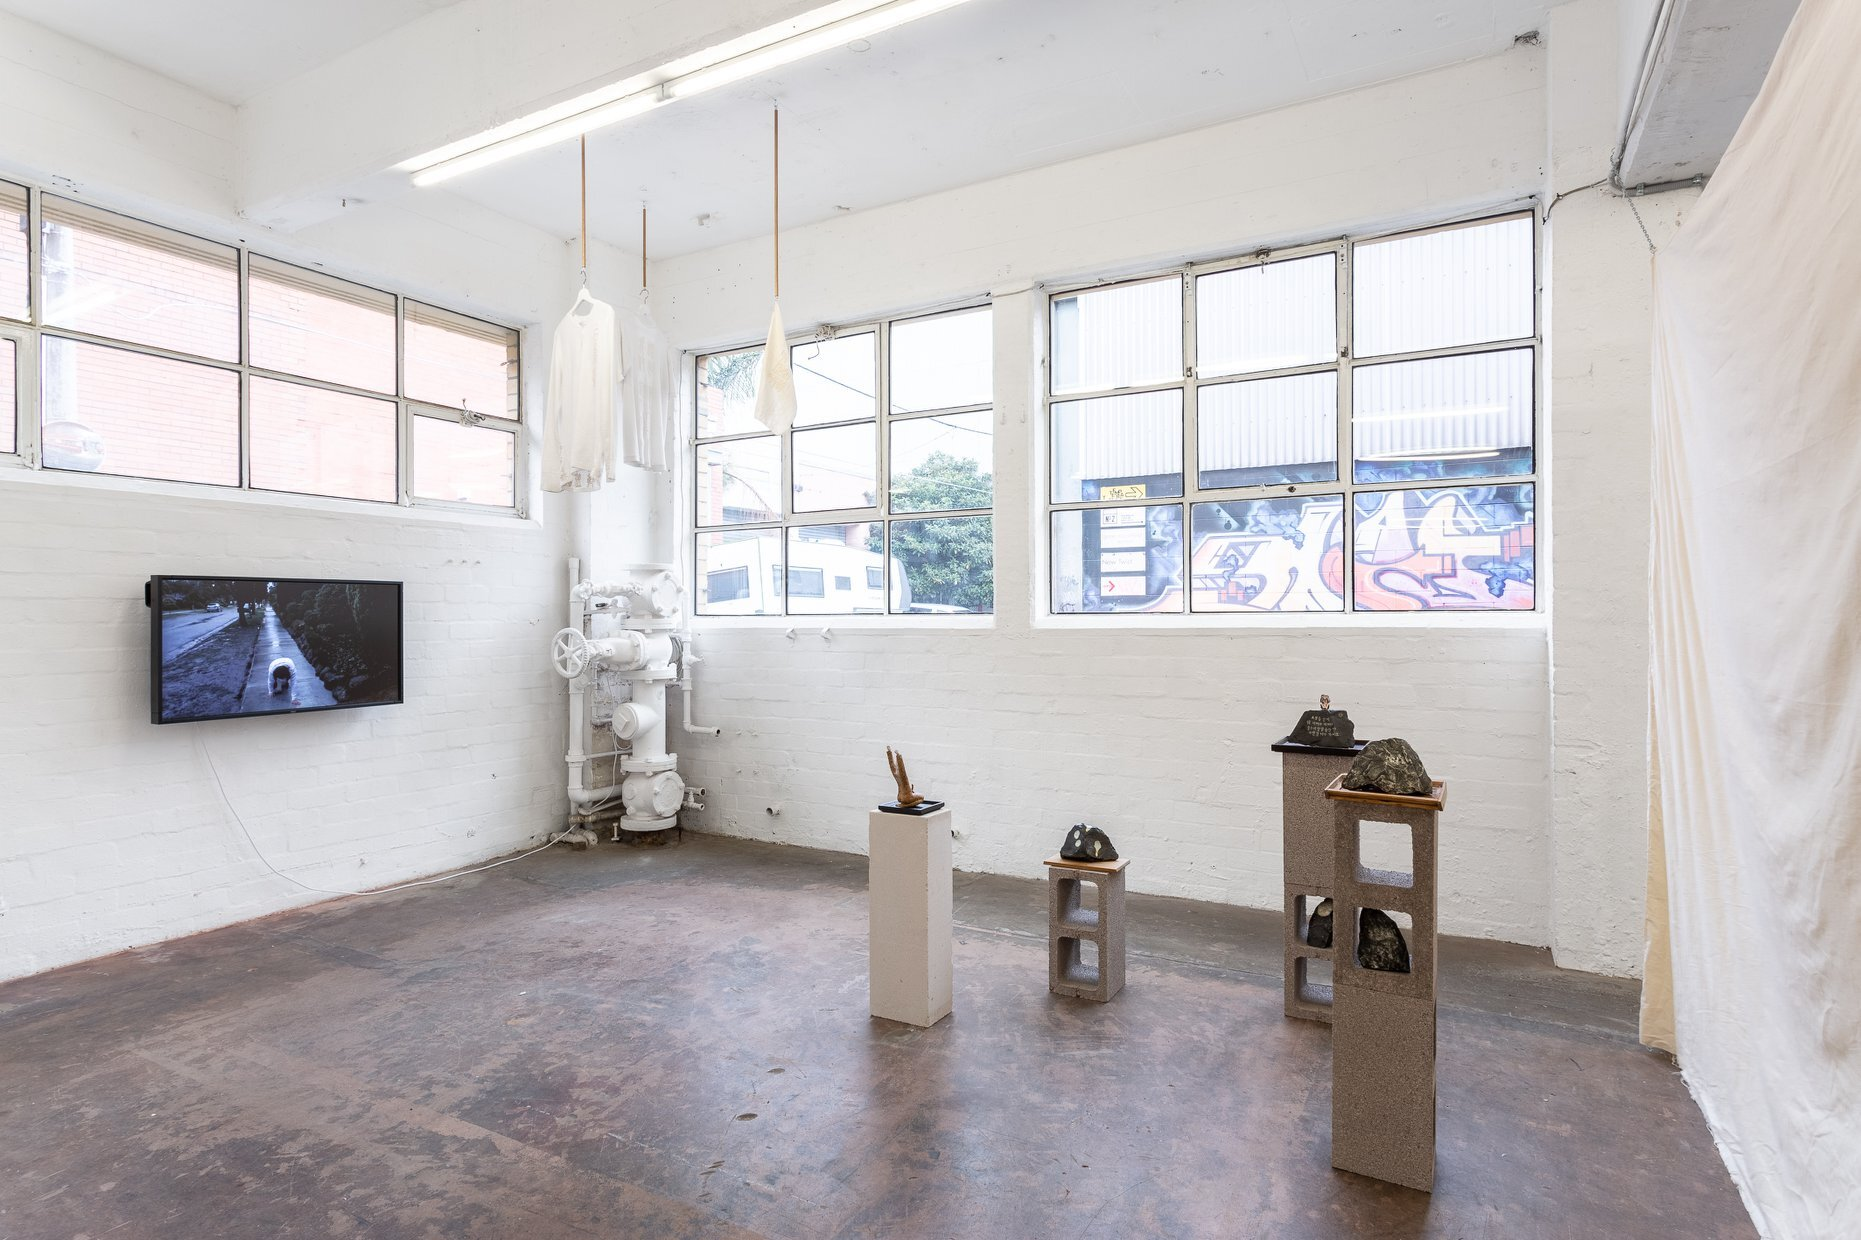 An exhibition being held at Bus Projects, based in Collingwood, Melbourne. Image Credit:  Bus Projects